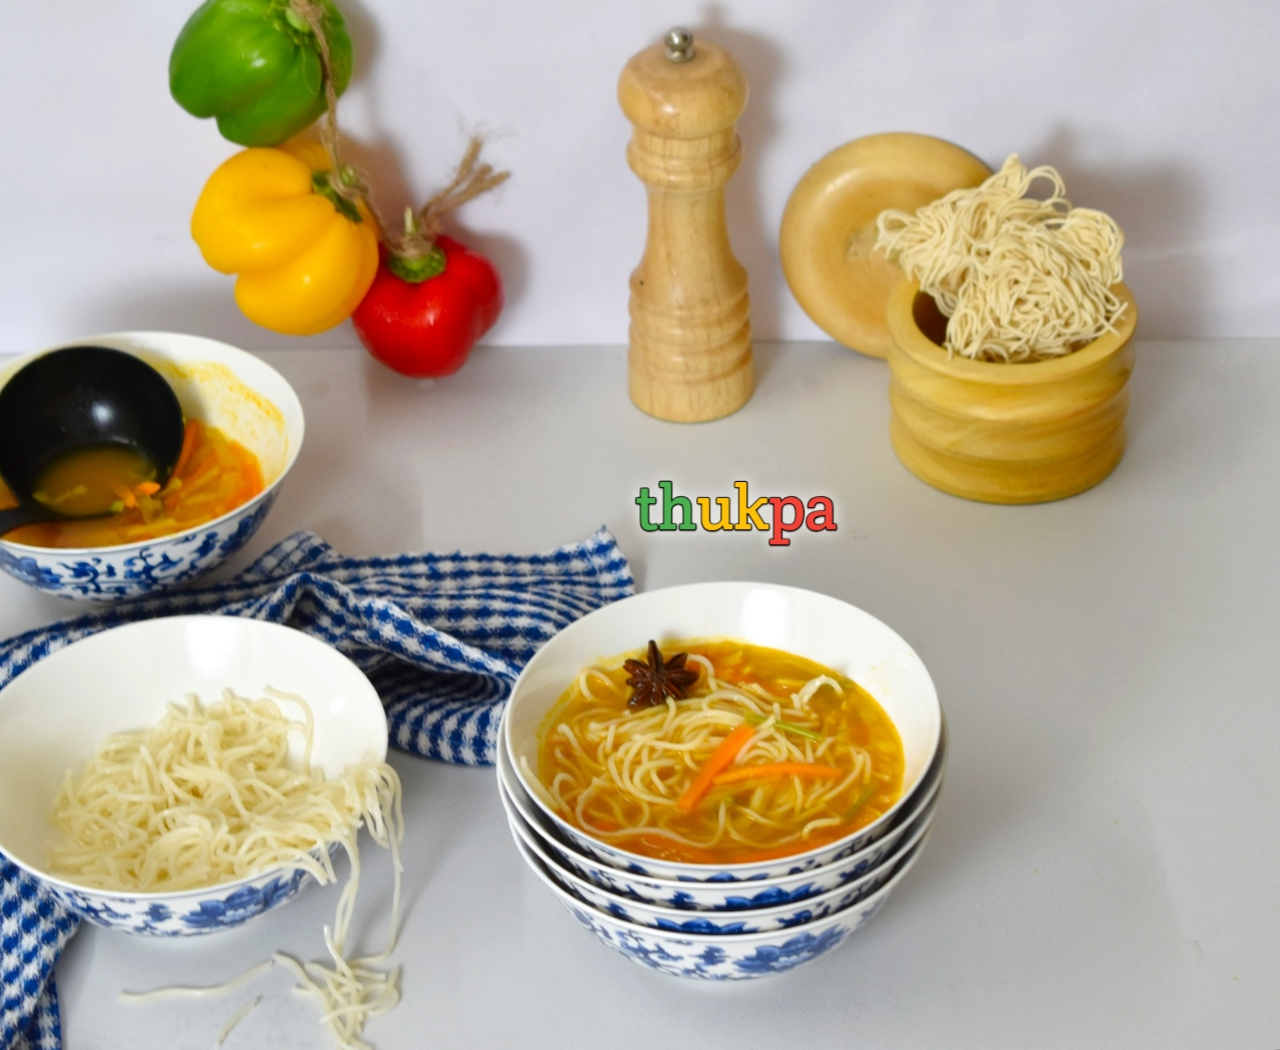 Thukpa Recipe